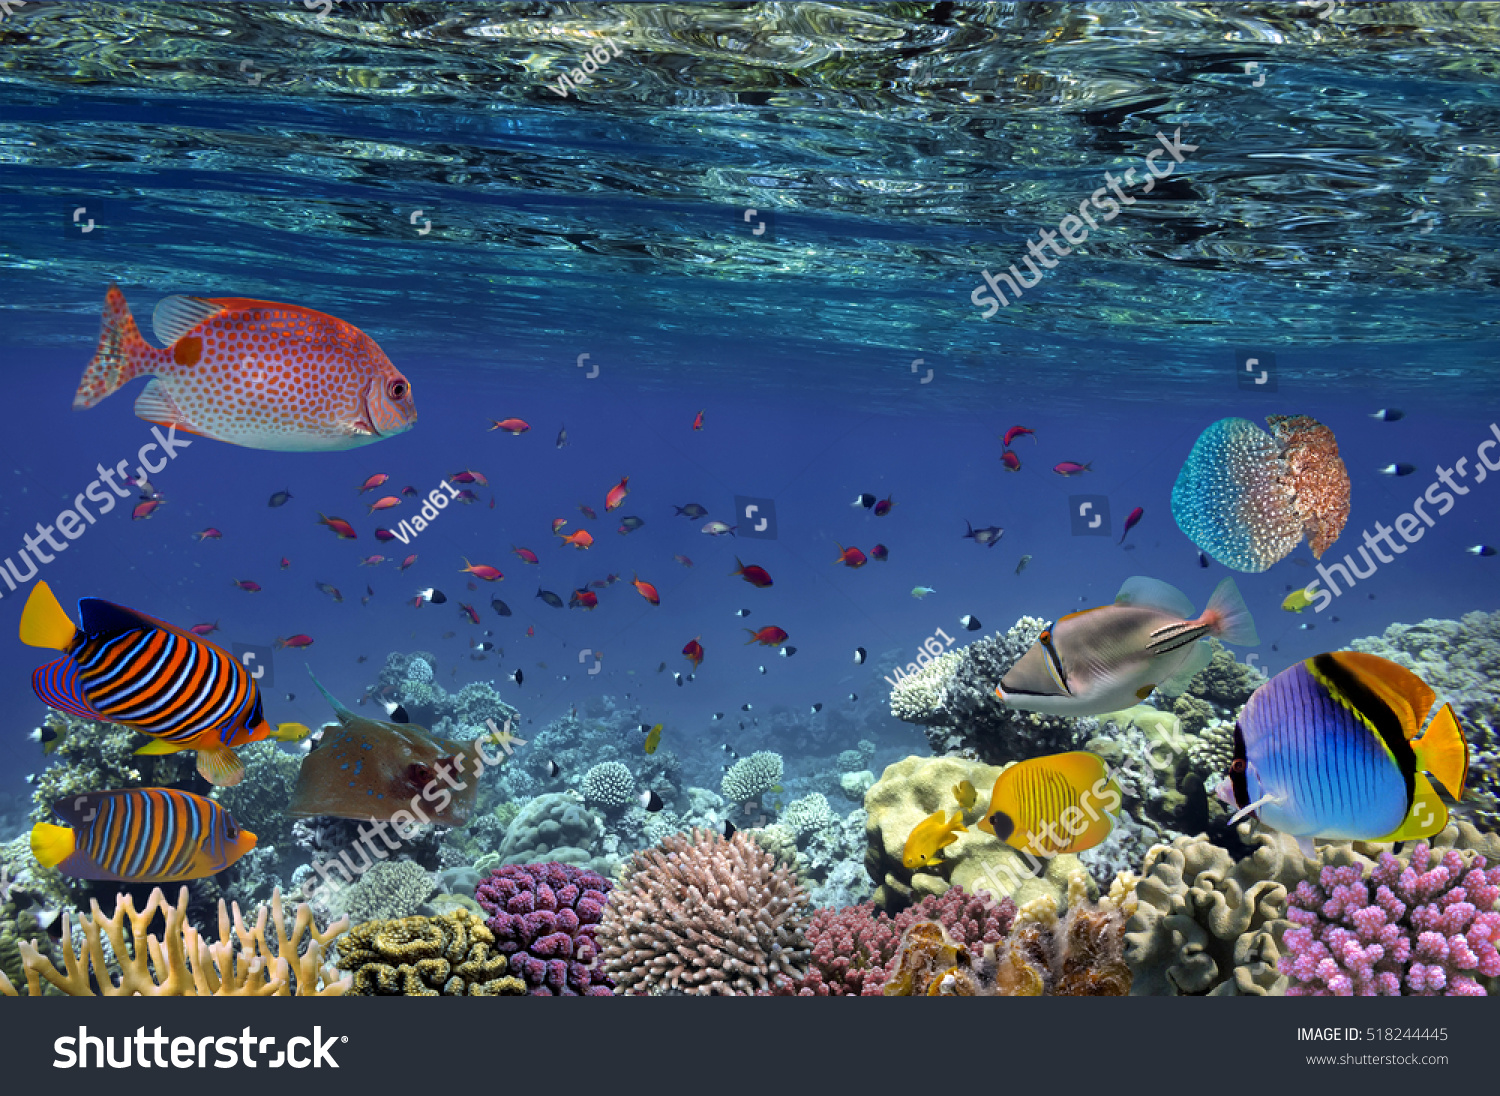 Colorful Reef Underwater Landscape Fishes Corals Stock ...